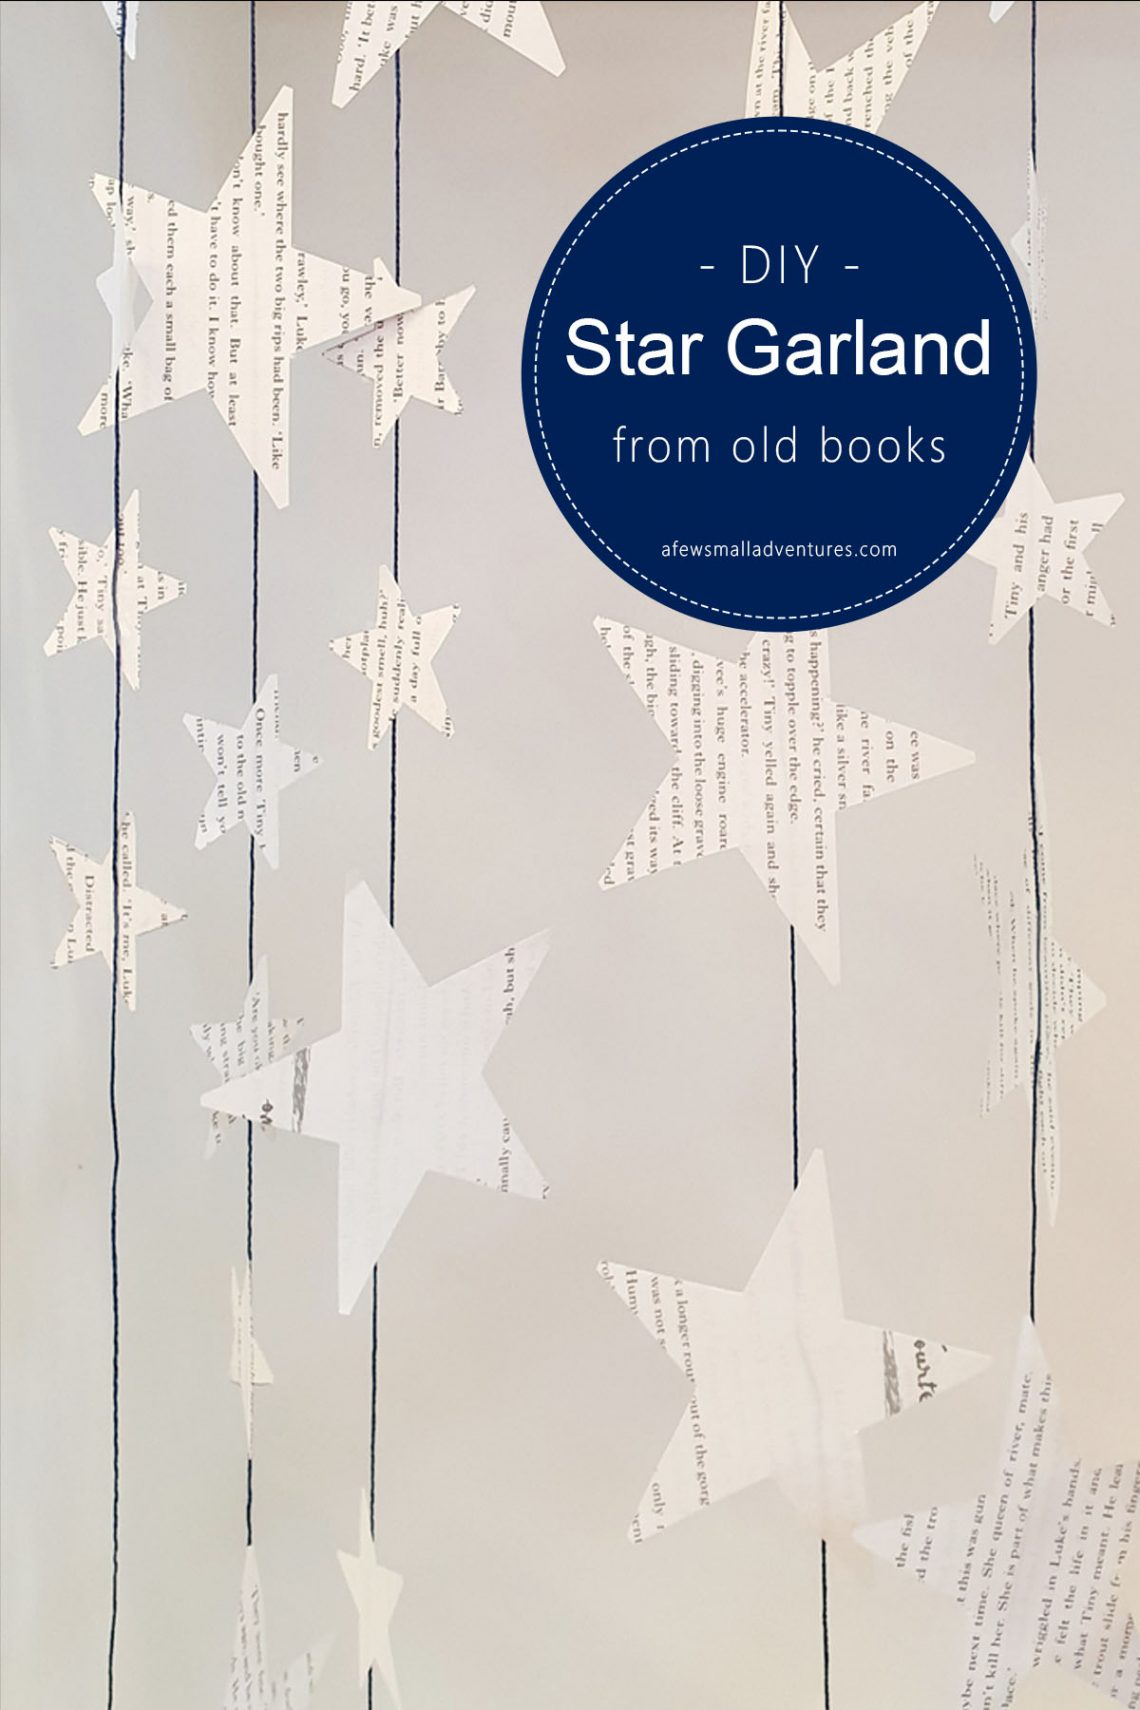 DIY Star Garland from Old Books